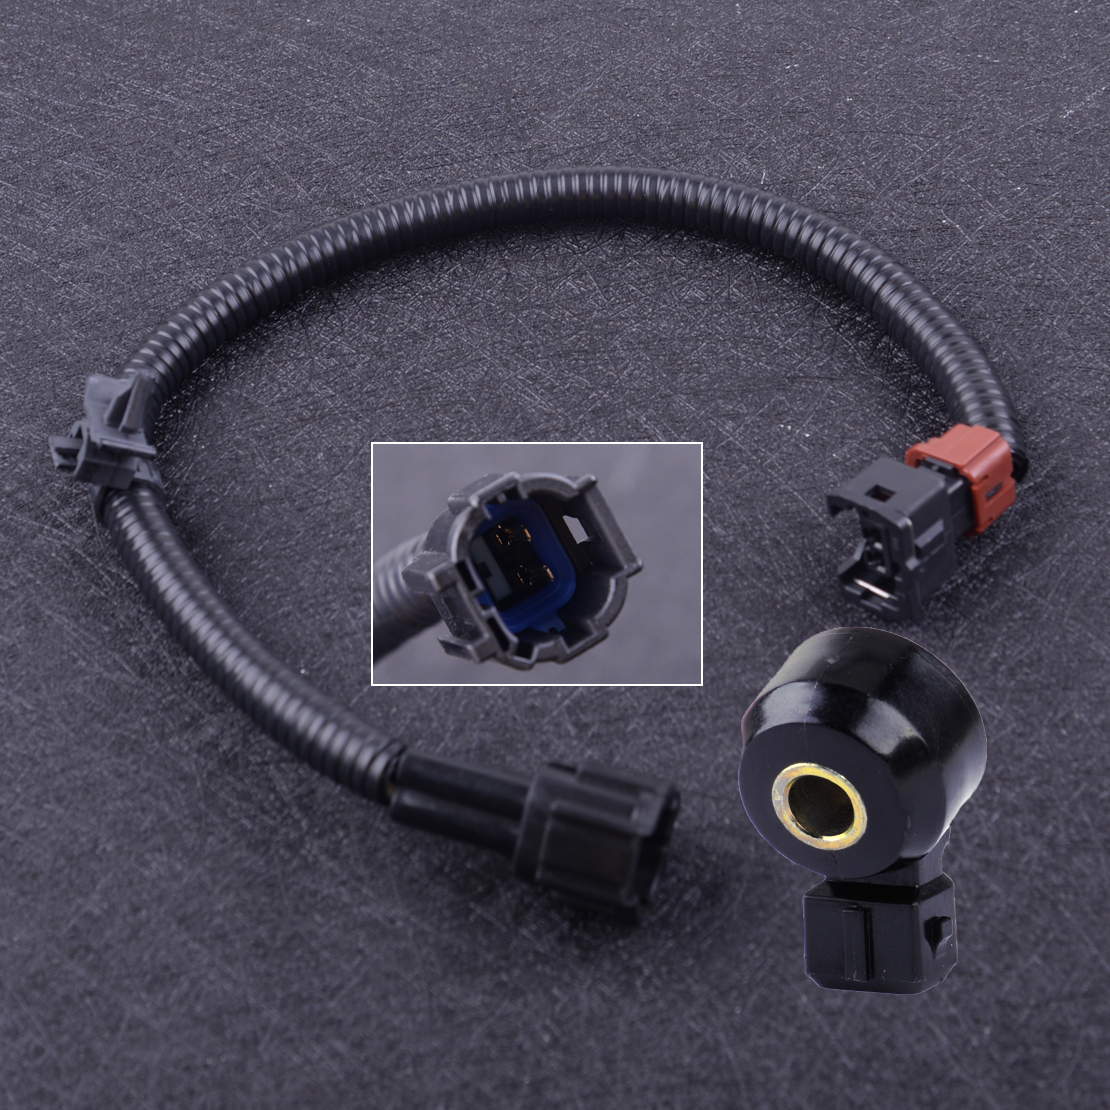 ECCPP Knock Detonation Sensor with Harness Compatible with 1995-2004 Nissan Pickup 1995-1998 Nissan 200SX 1991-1998 Nissan 240SX 1990-1996 Nissan 300ZX 1993-2001 Nissan Altima 22060-30P00